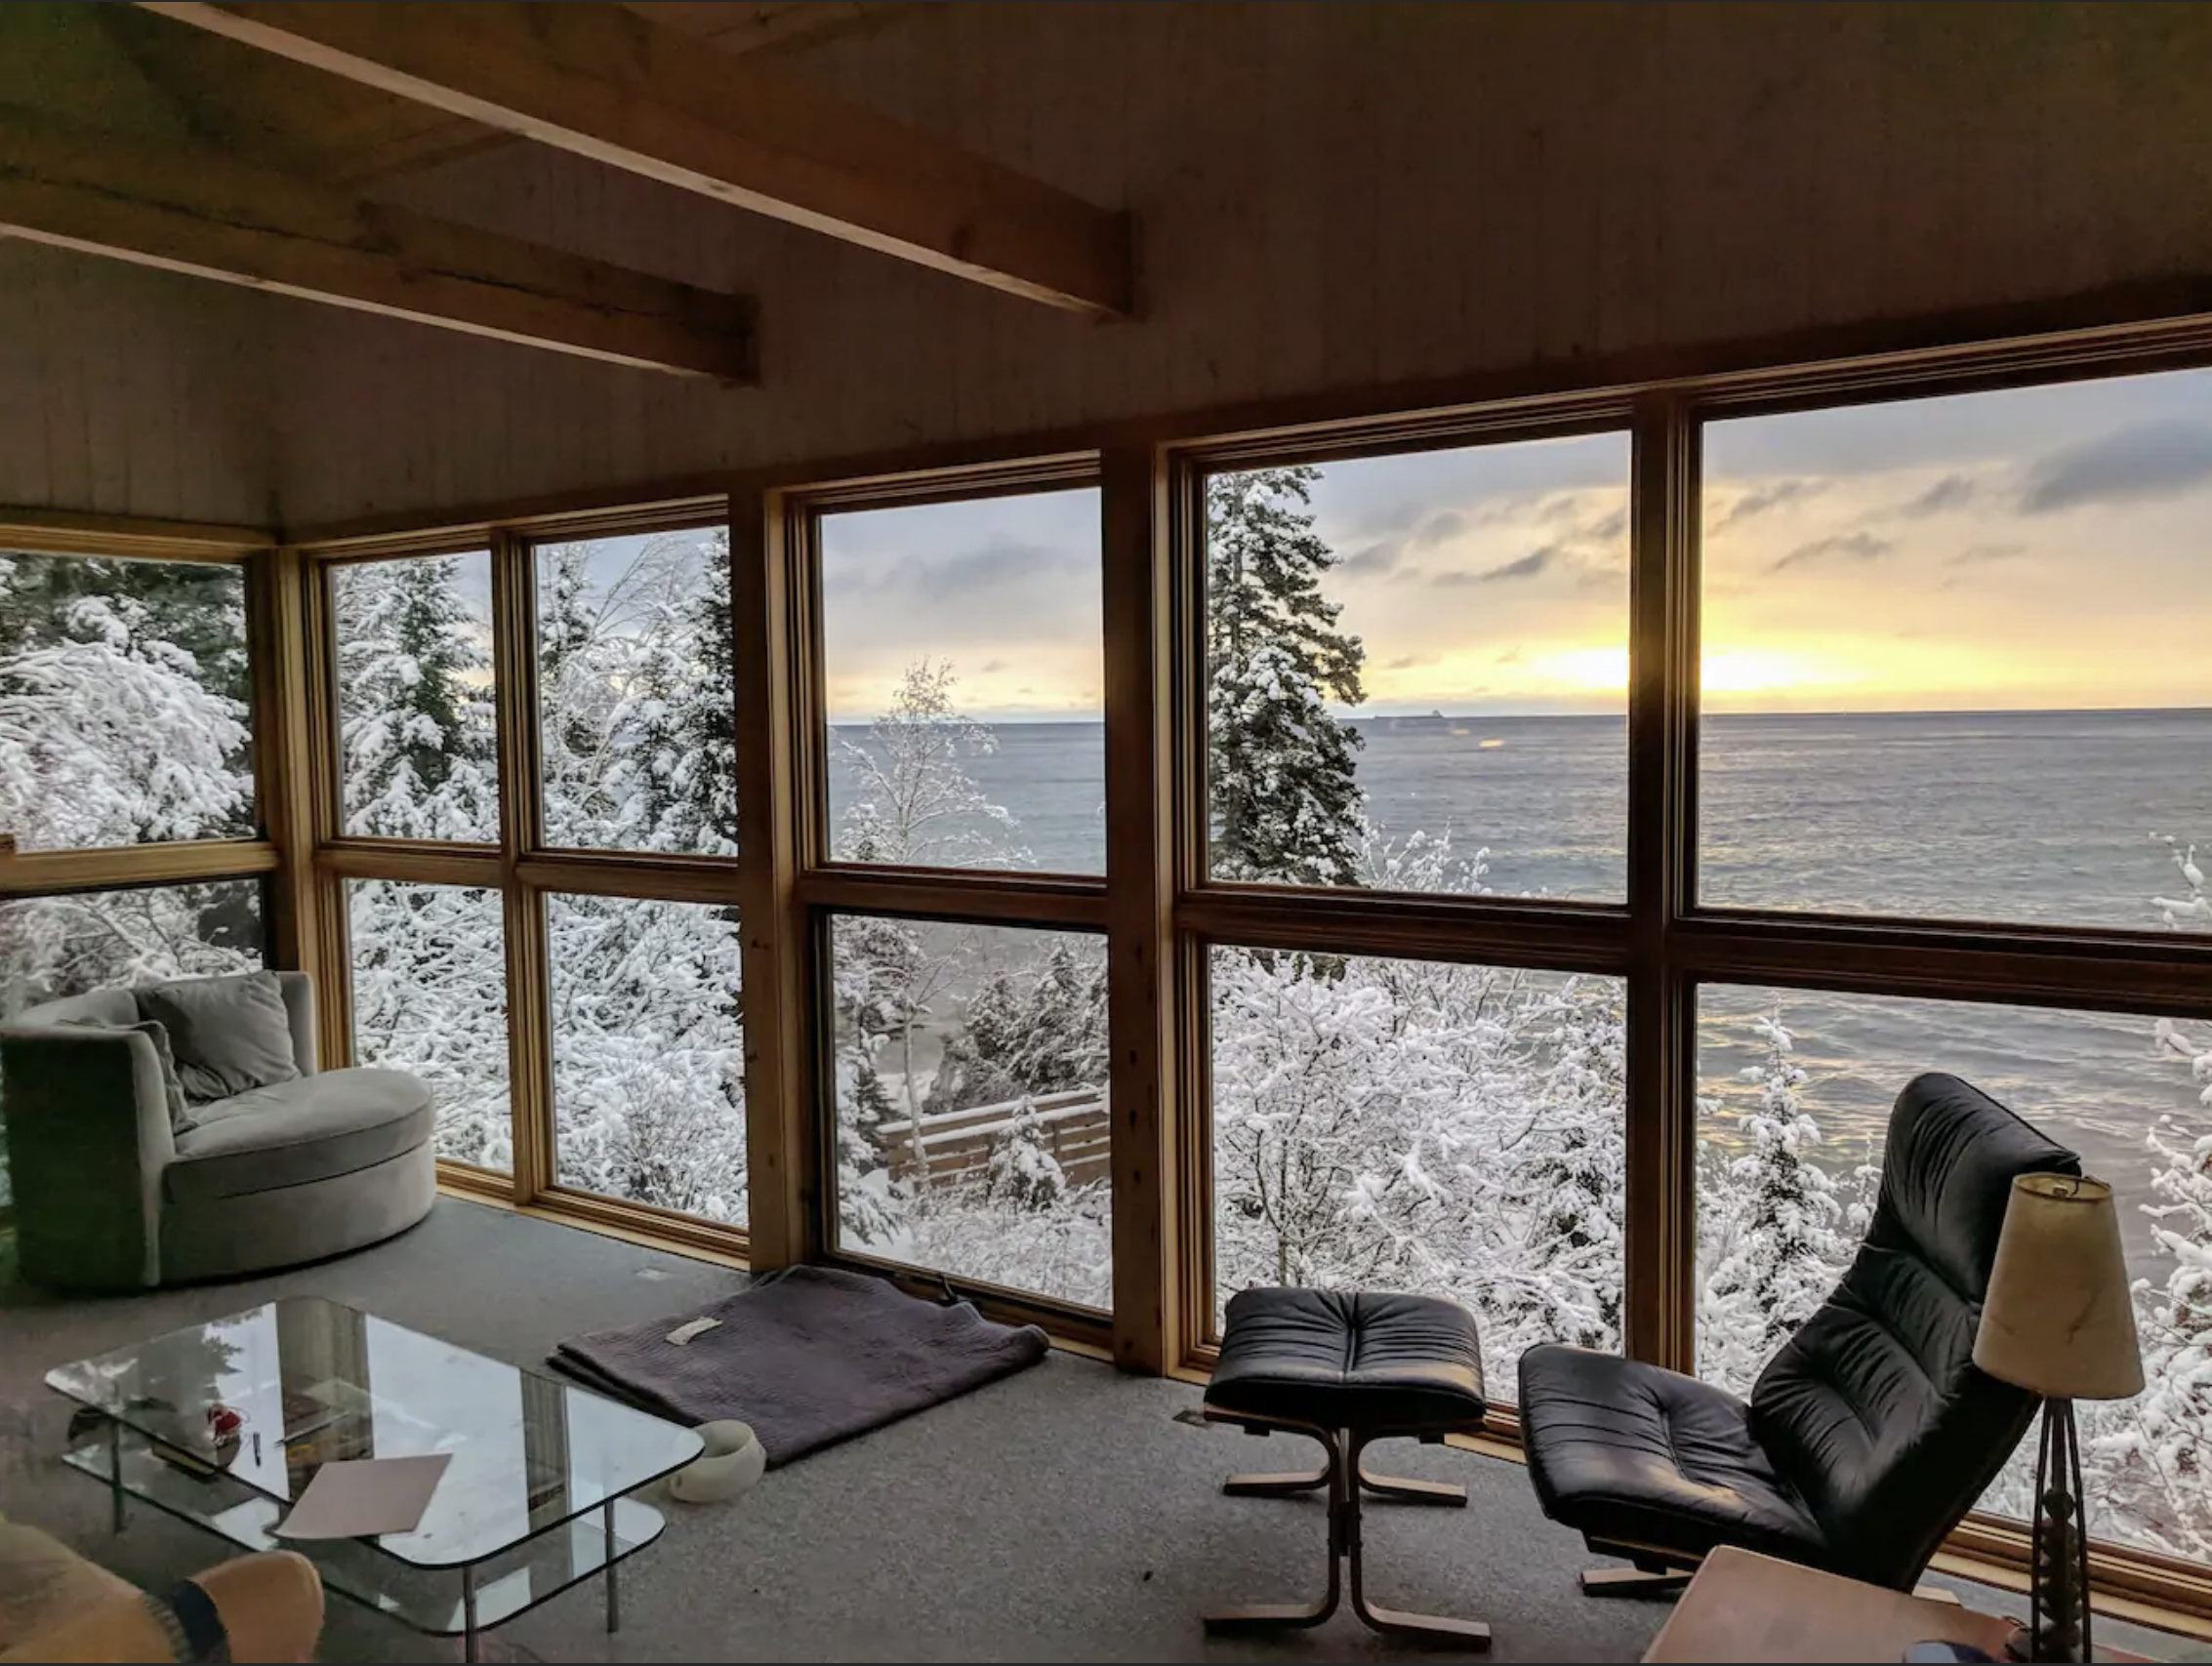 Floor-to-ceiling windows make this snowy view of Lake Superior absolutely stunning. /  Source